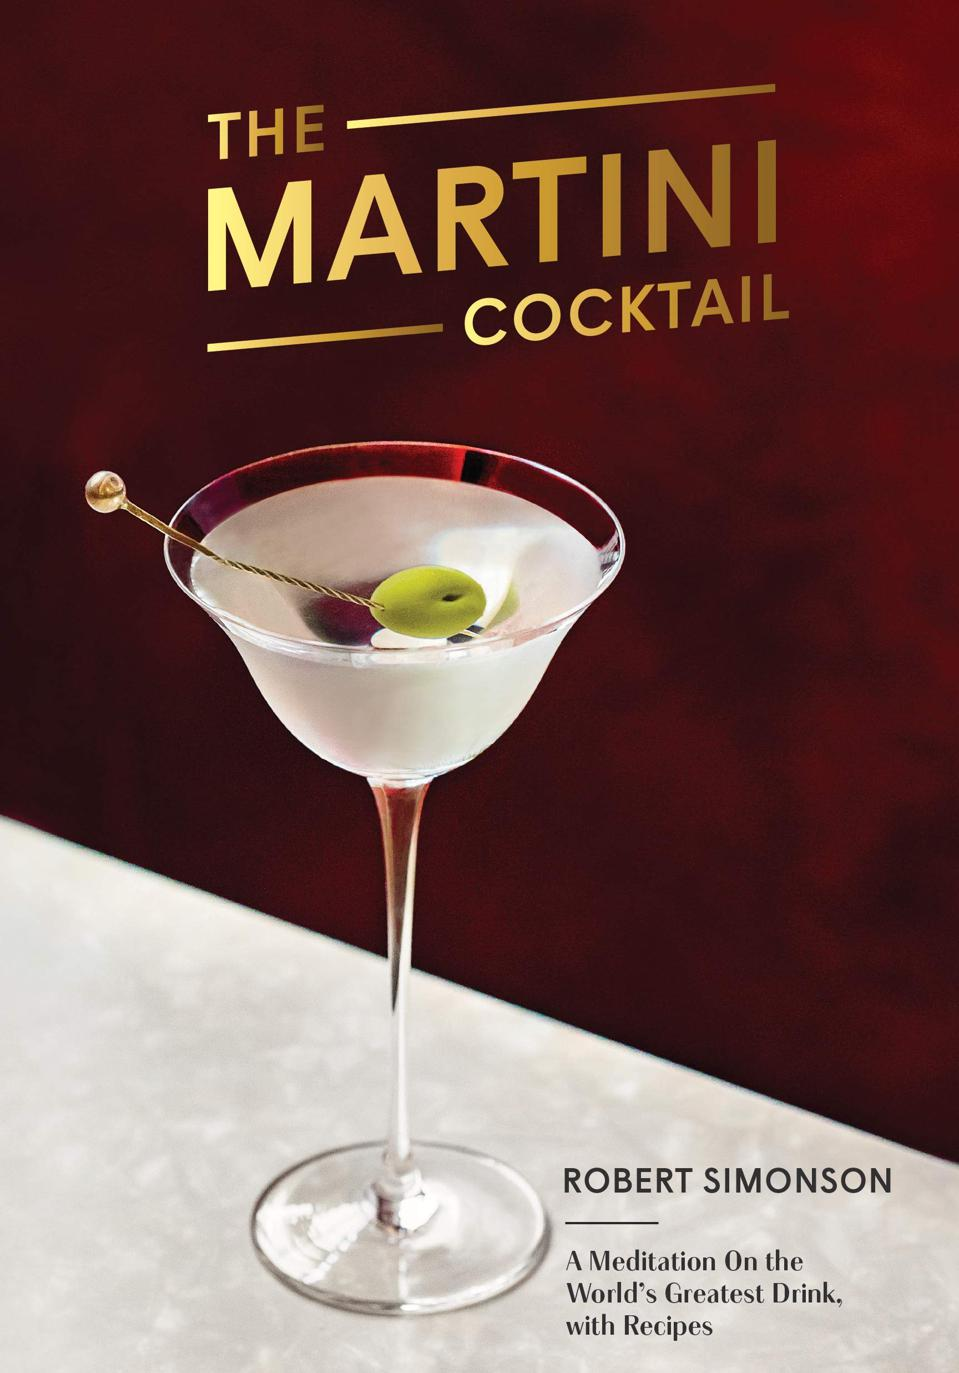 Best Cocktails Books_Martini Cocktail by Robert Simonson